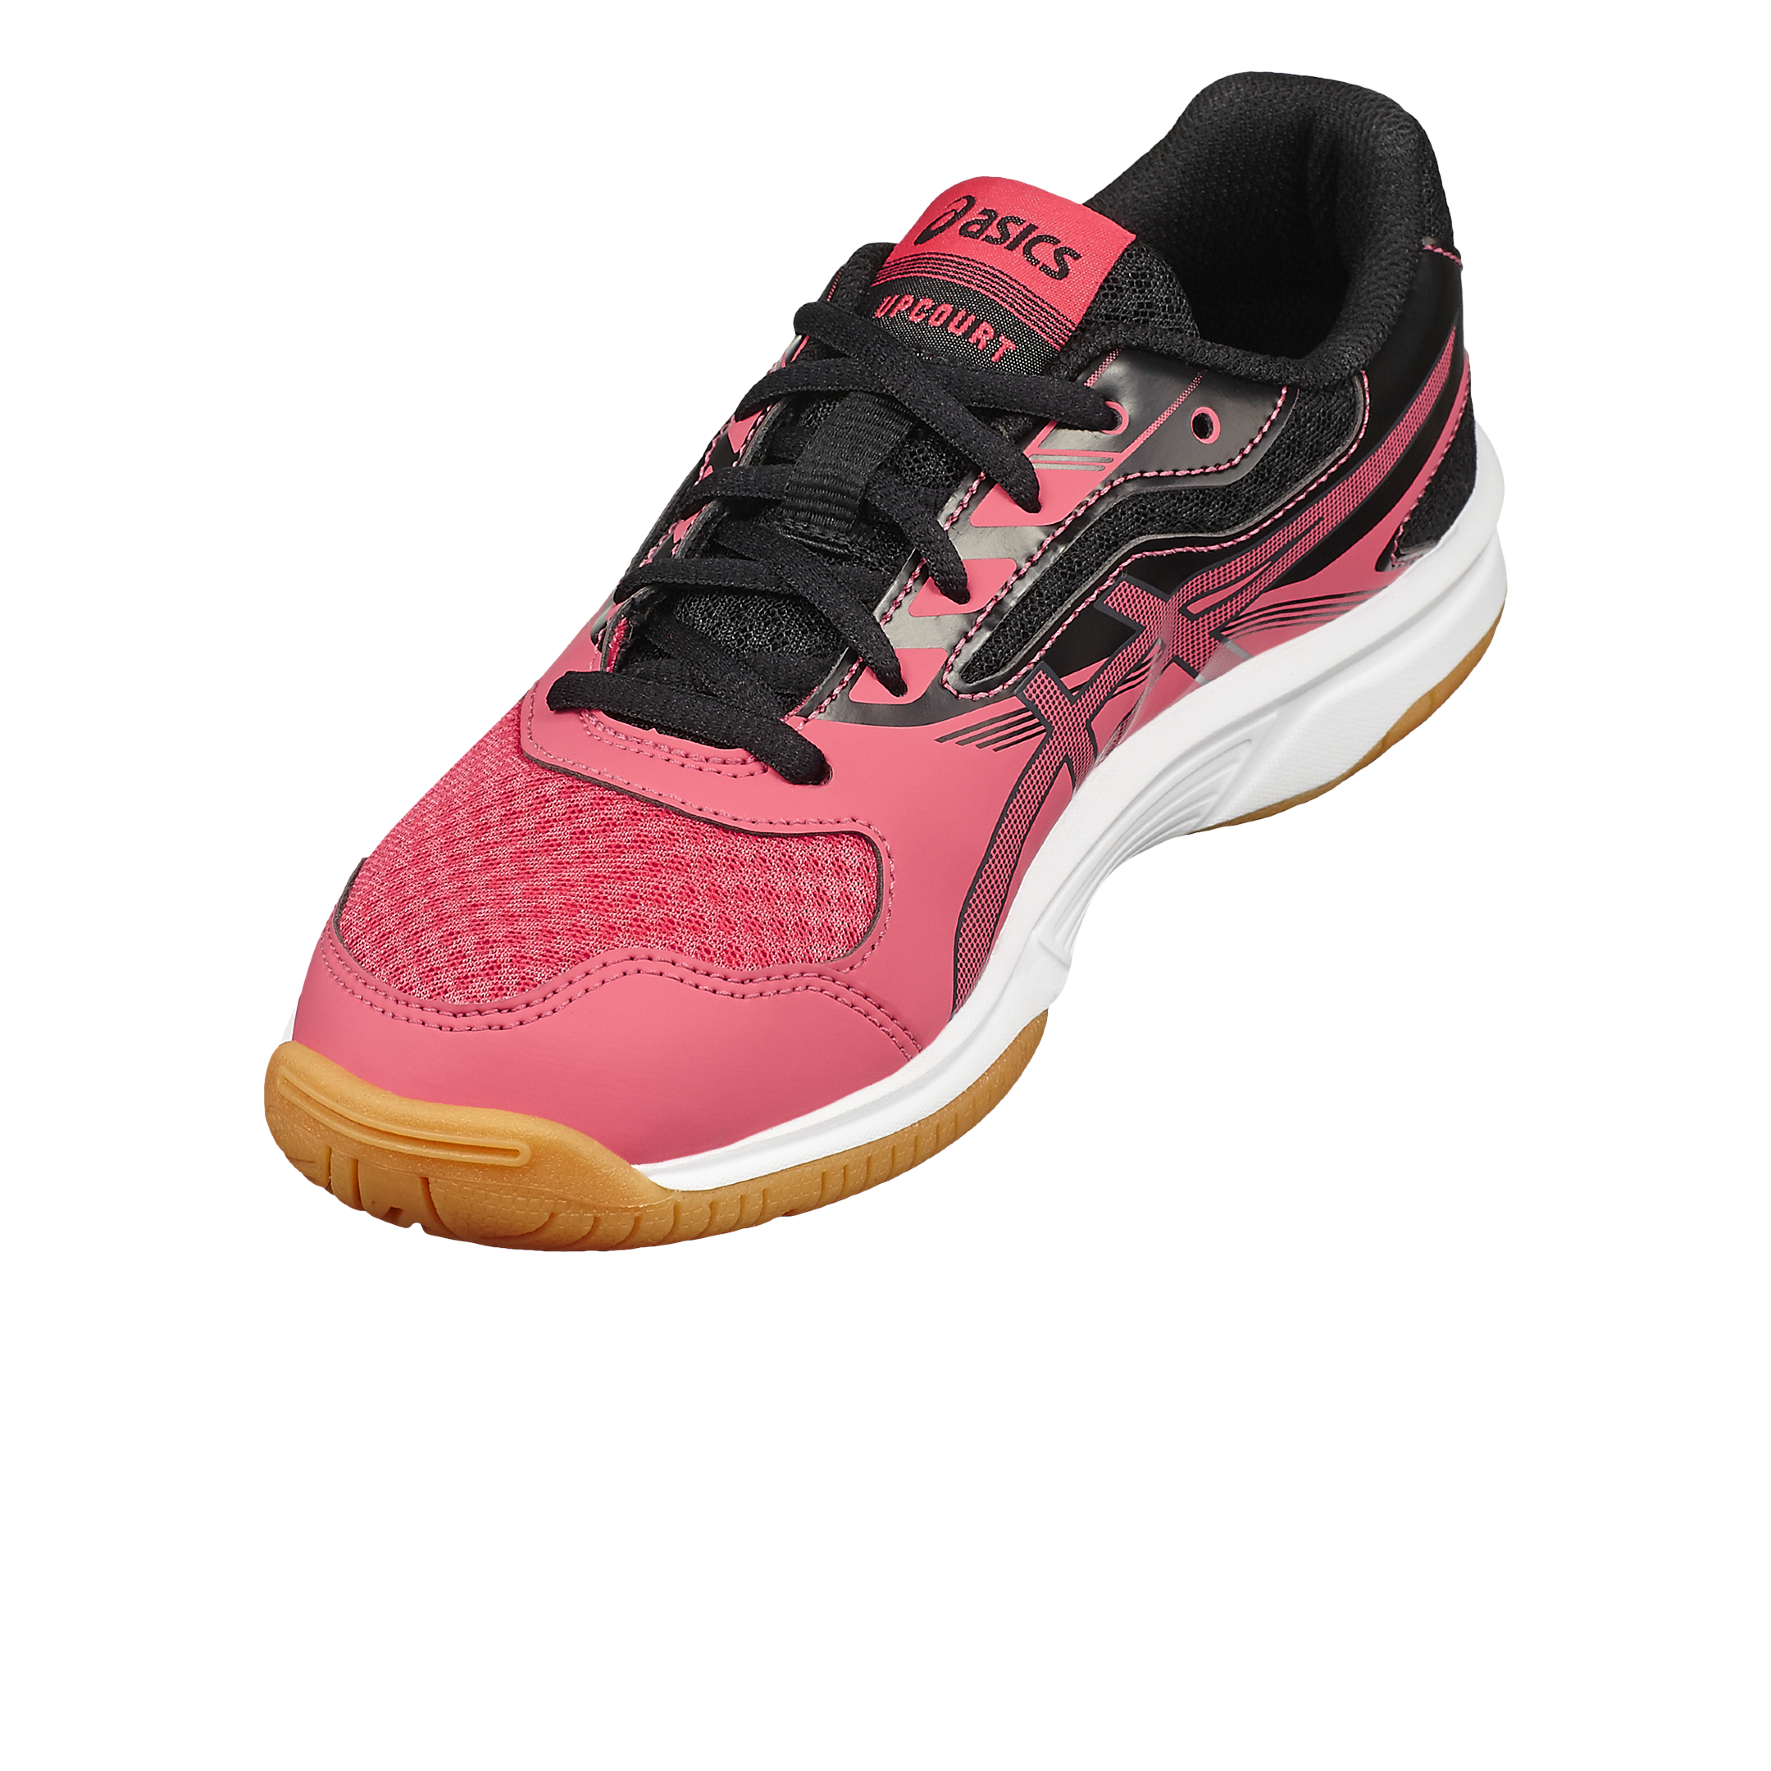 lowest price 0227f 67a64 Asics UPCOURT 2 GS Kinder Turnschuh